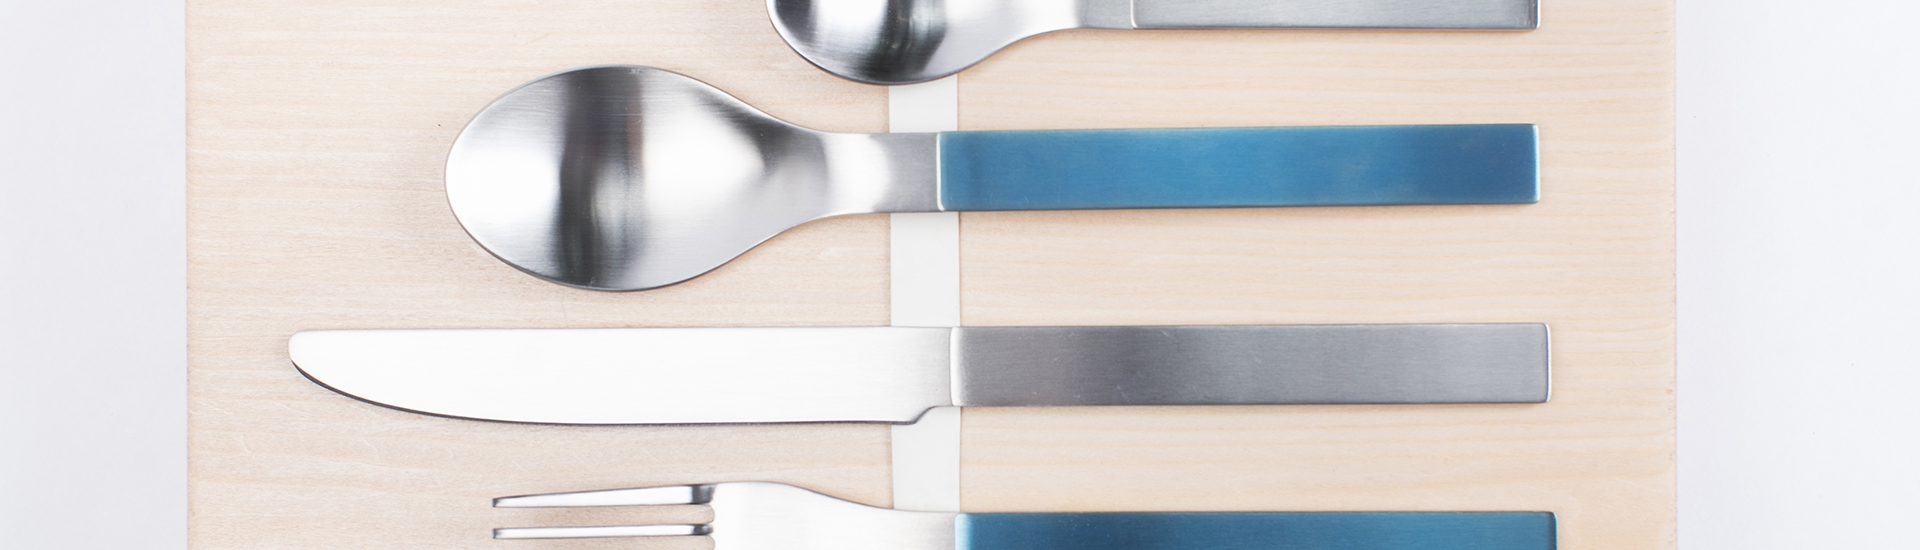 new cutlery by muller van severen